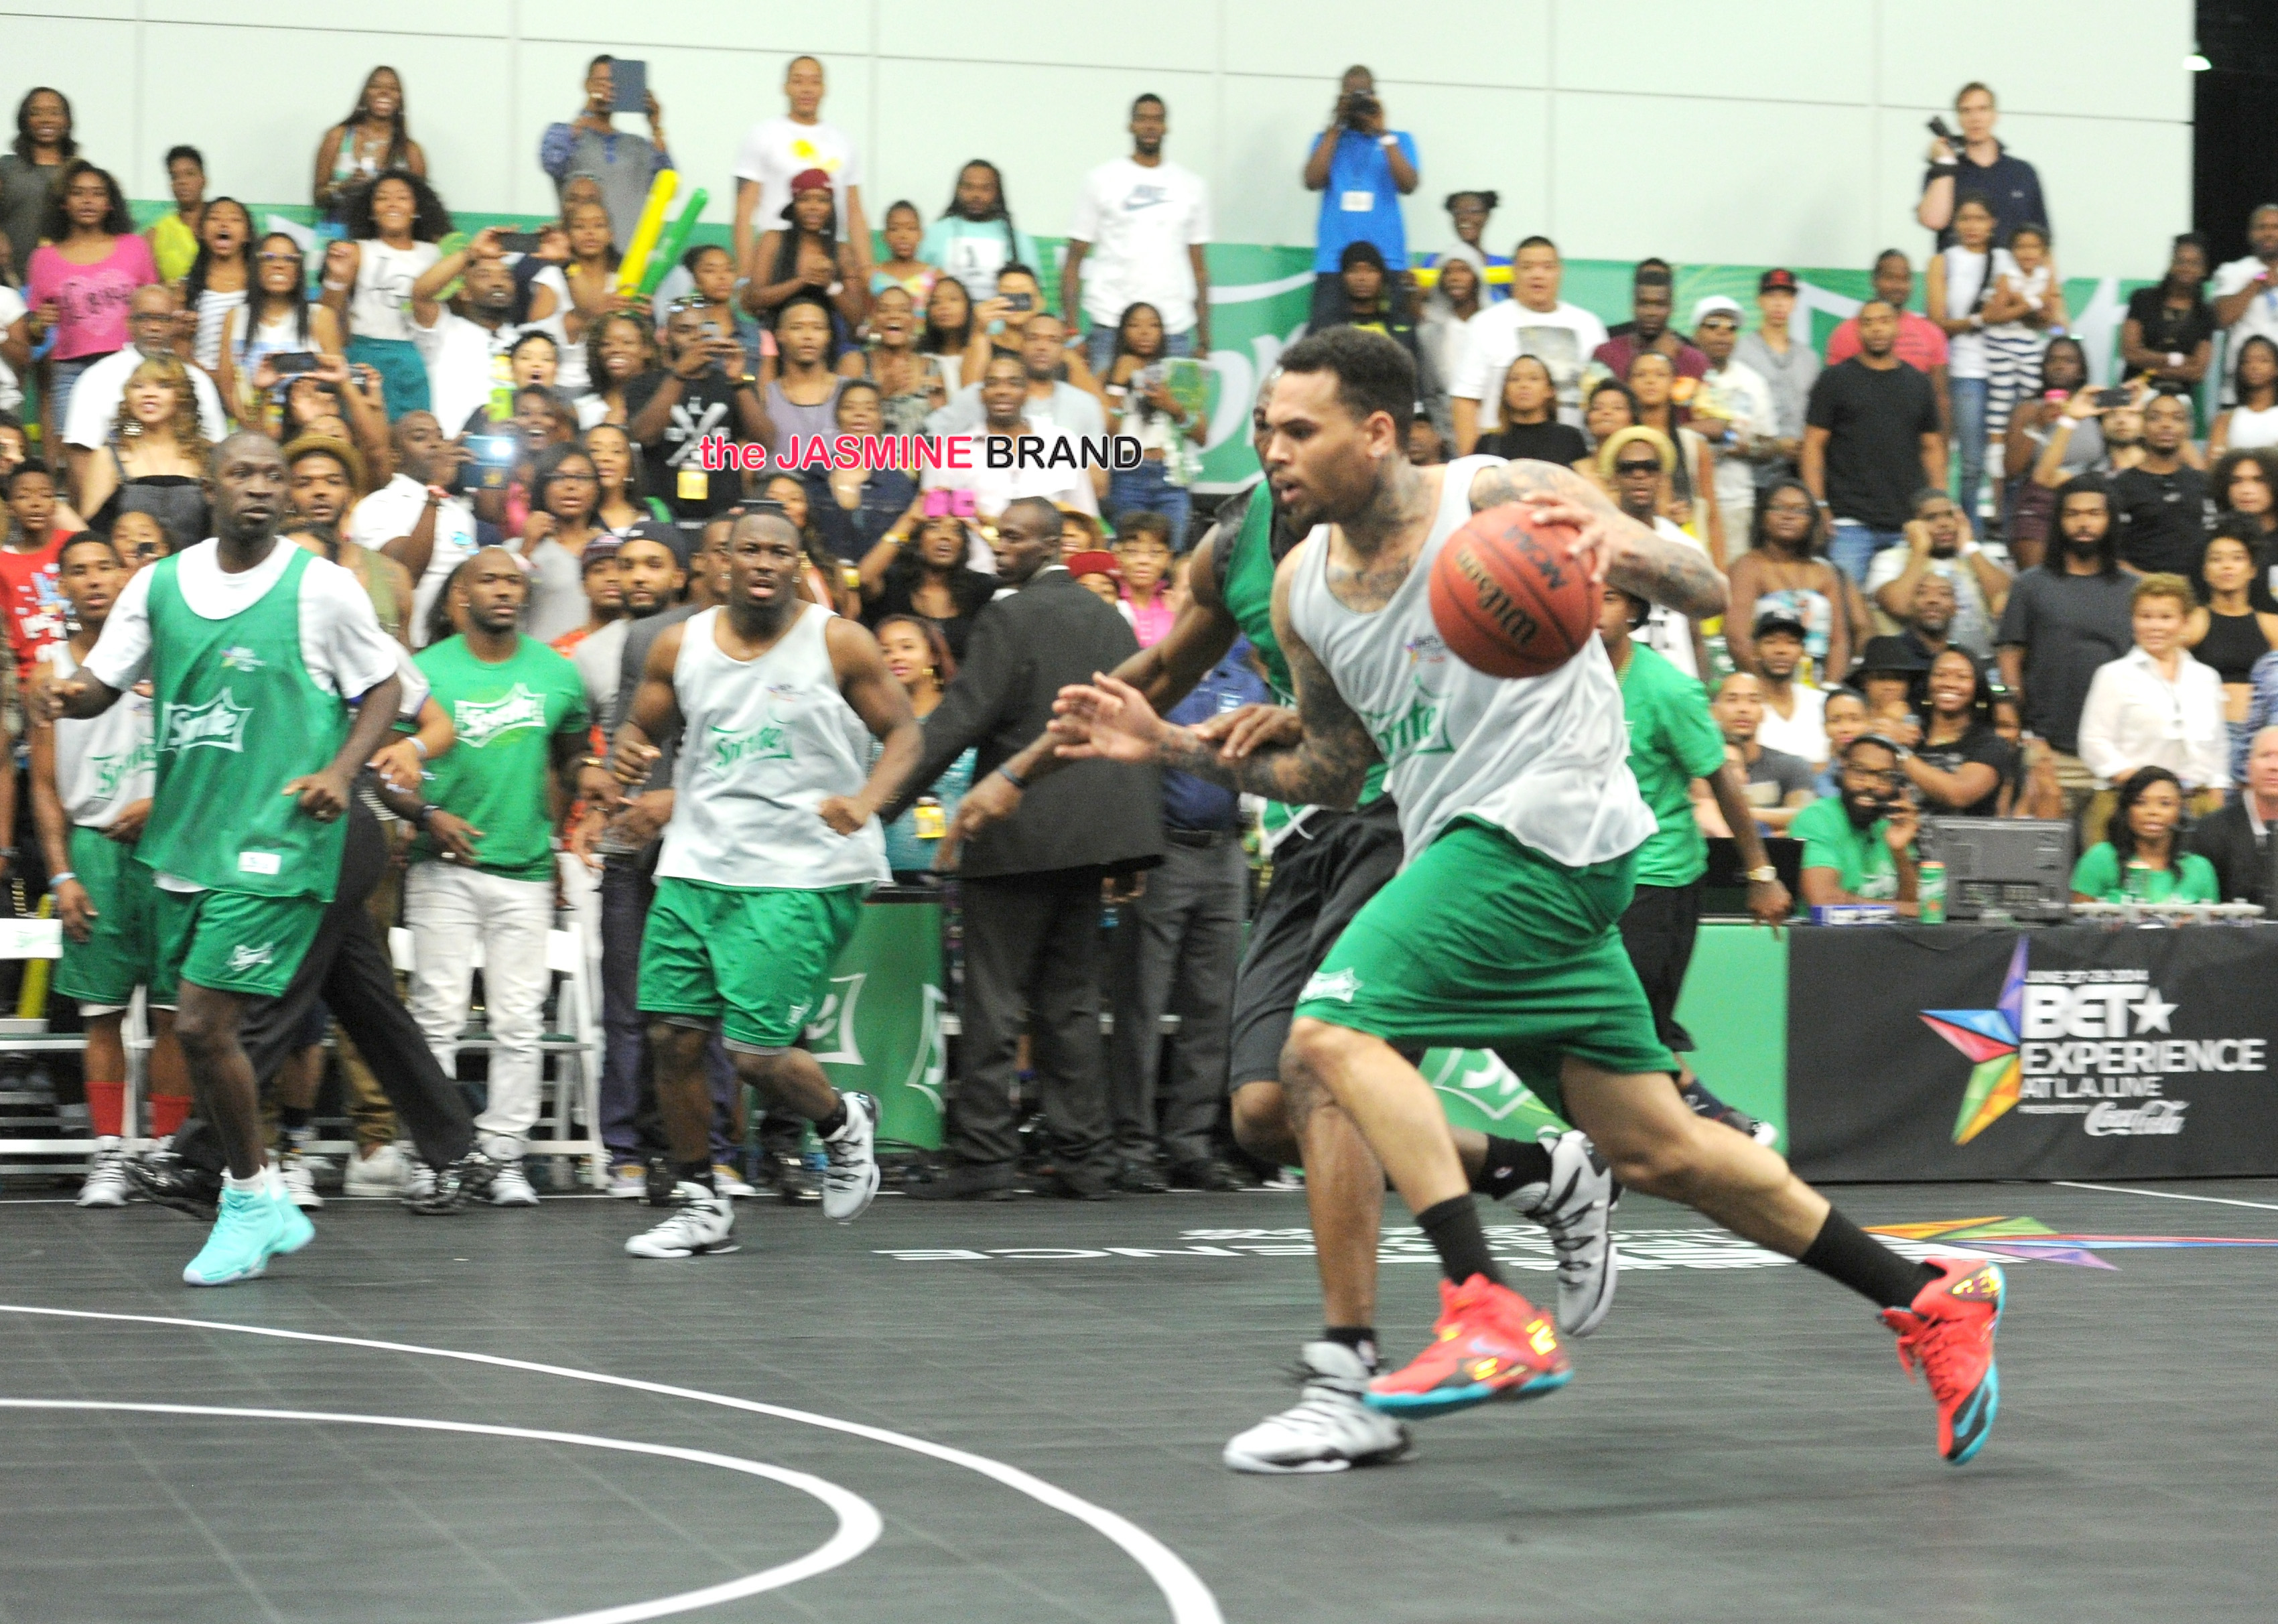 Brehs brawling at a celeb bball game | Sports, Hip Hop ...